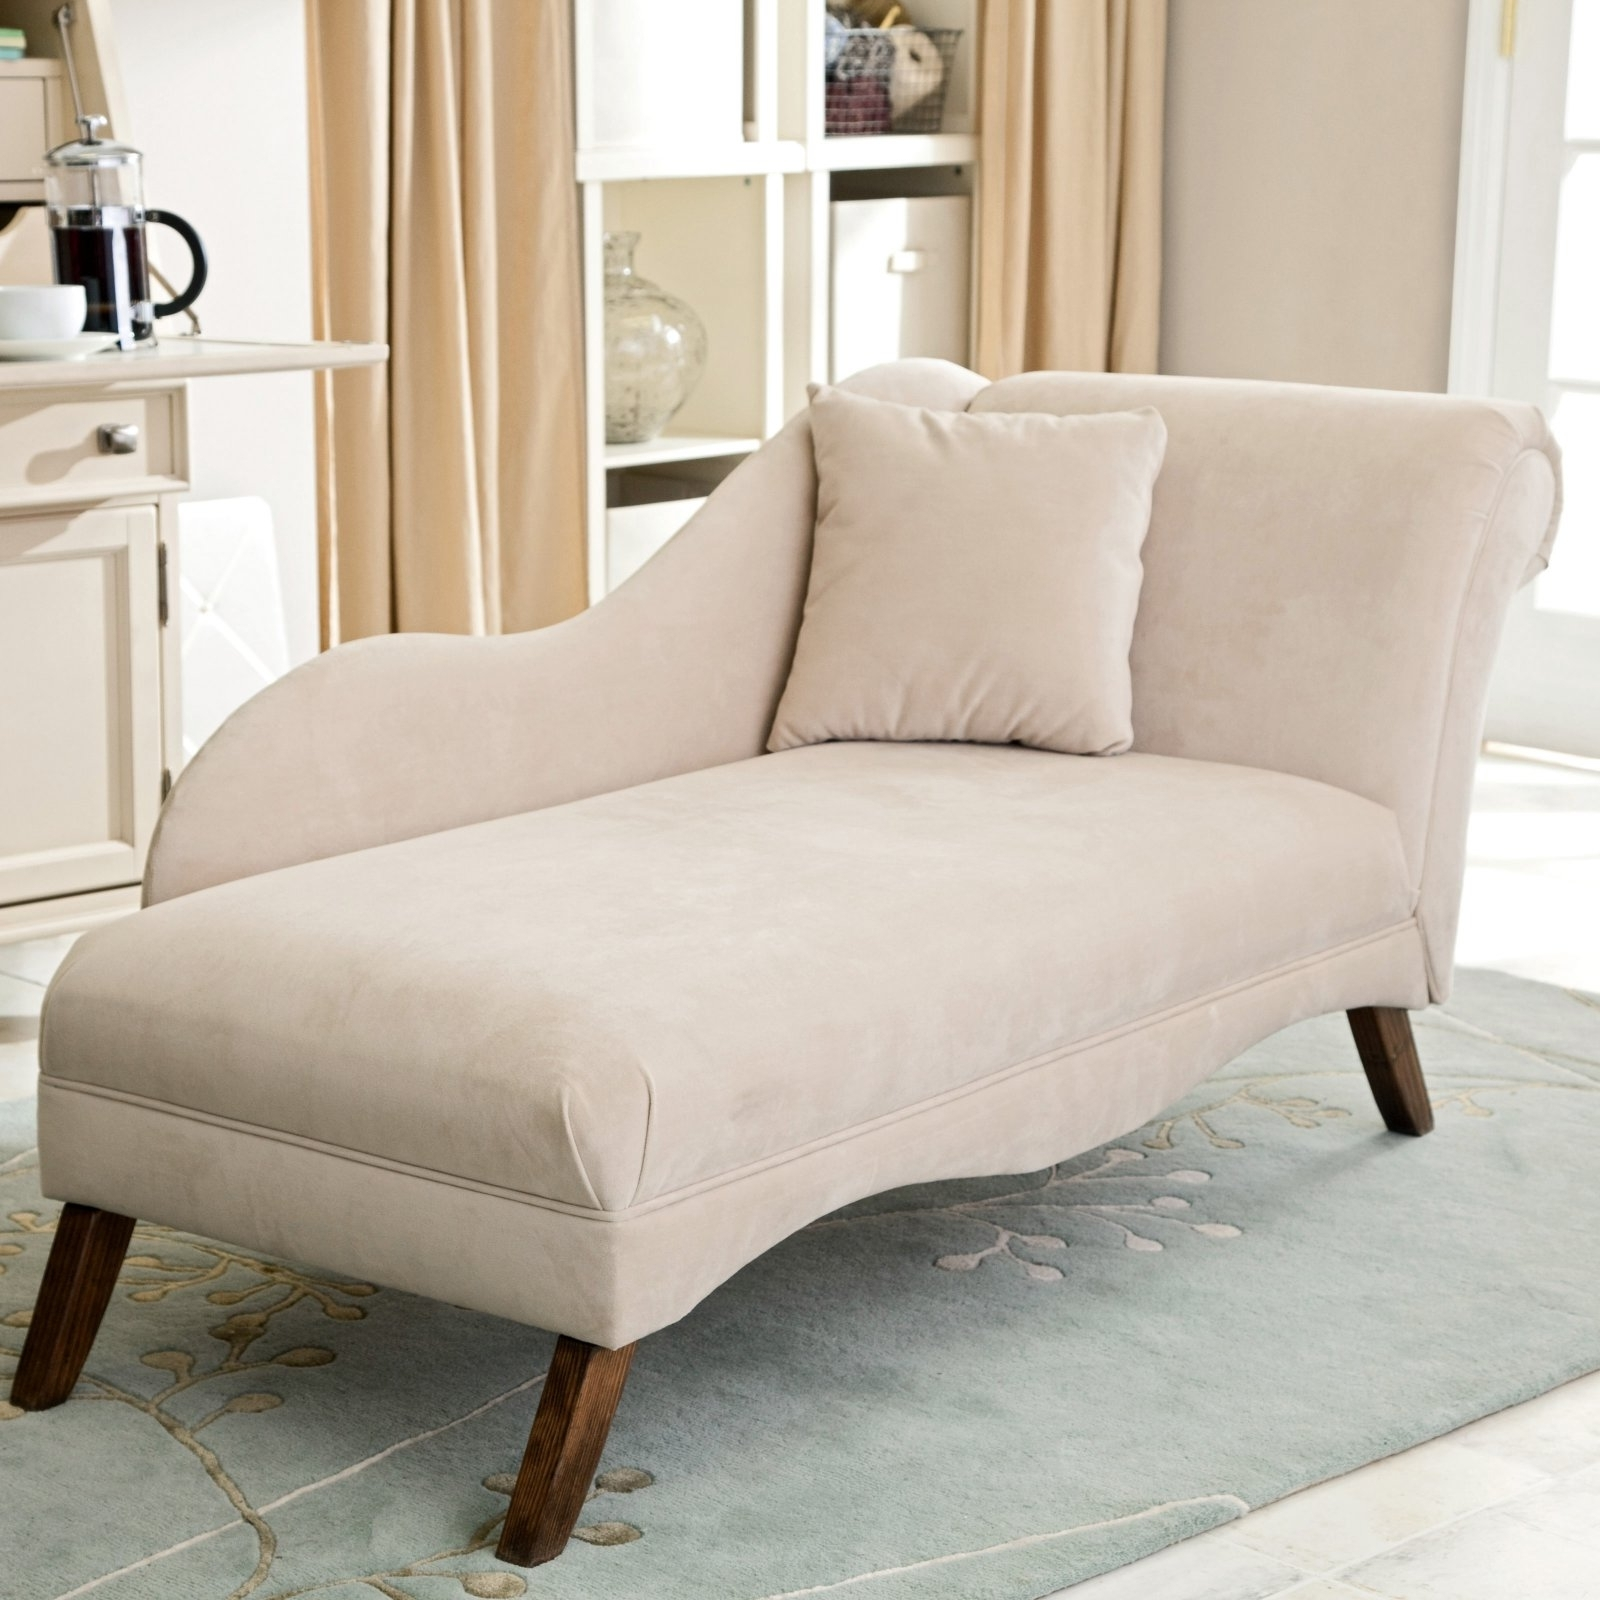 Chaise Lounge Chairs For Bedroom – Decofurnish With Regard To Best And Newest Chaise Lounges For Bedroom (View 5 of 15)